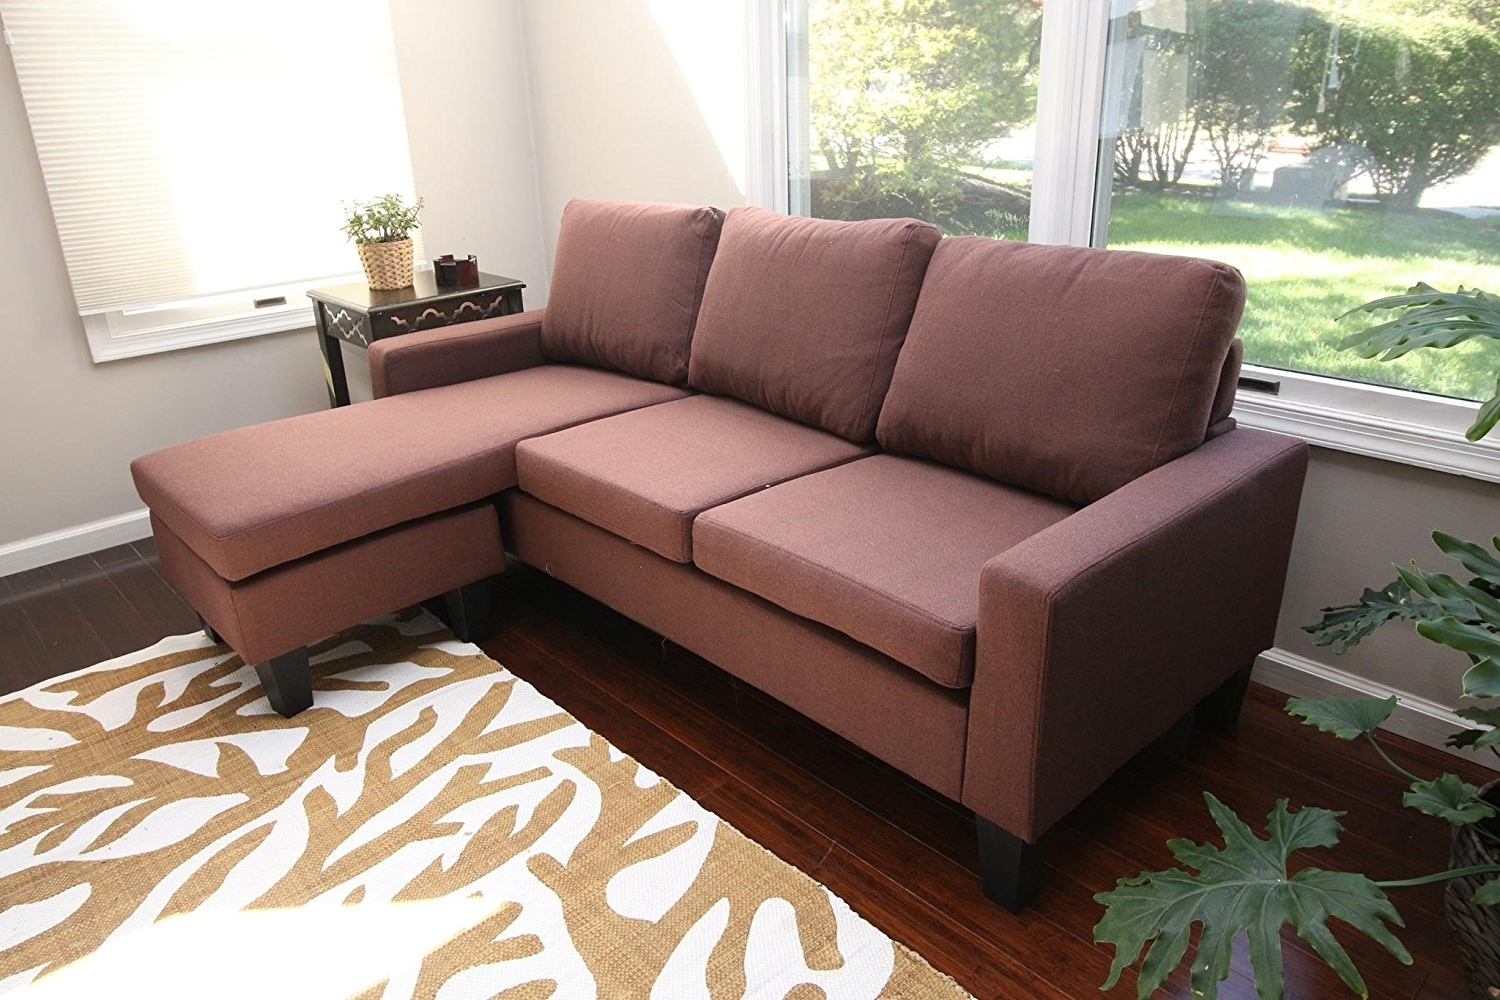 Vancouver Wa Sectional Sofas in Most Popular Furniture : Corner Couch And Swivel Chair Sectional Couch